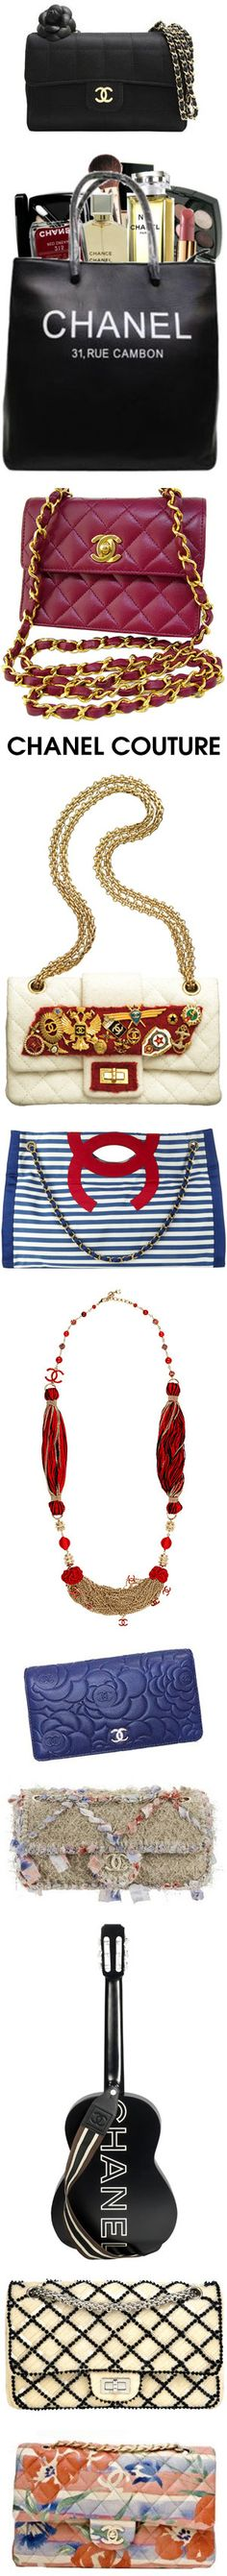 """""""CHANEL PART 1"""" by freebirds ❤ liked on Polyvore"""